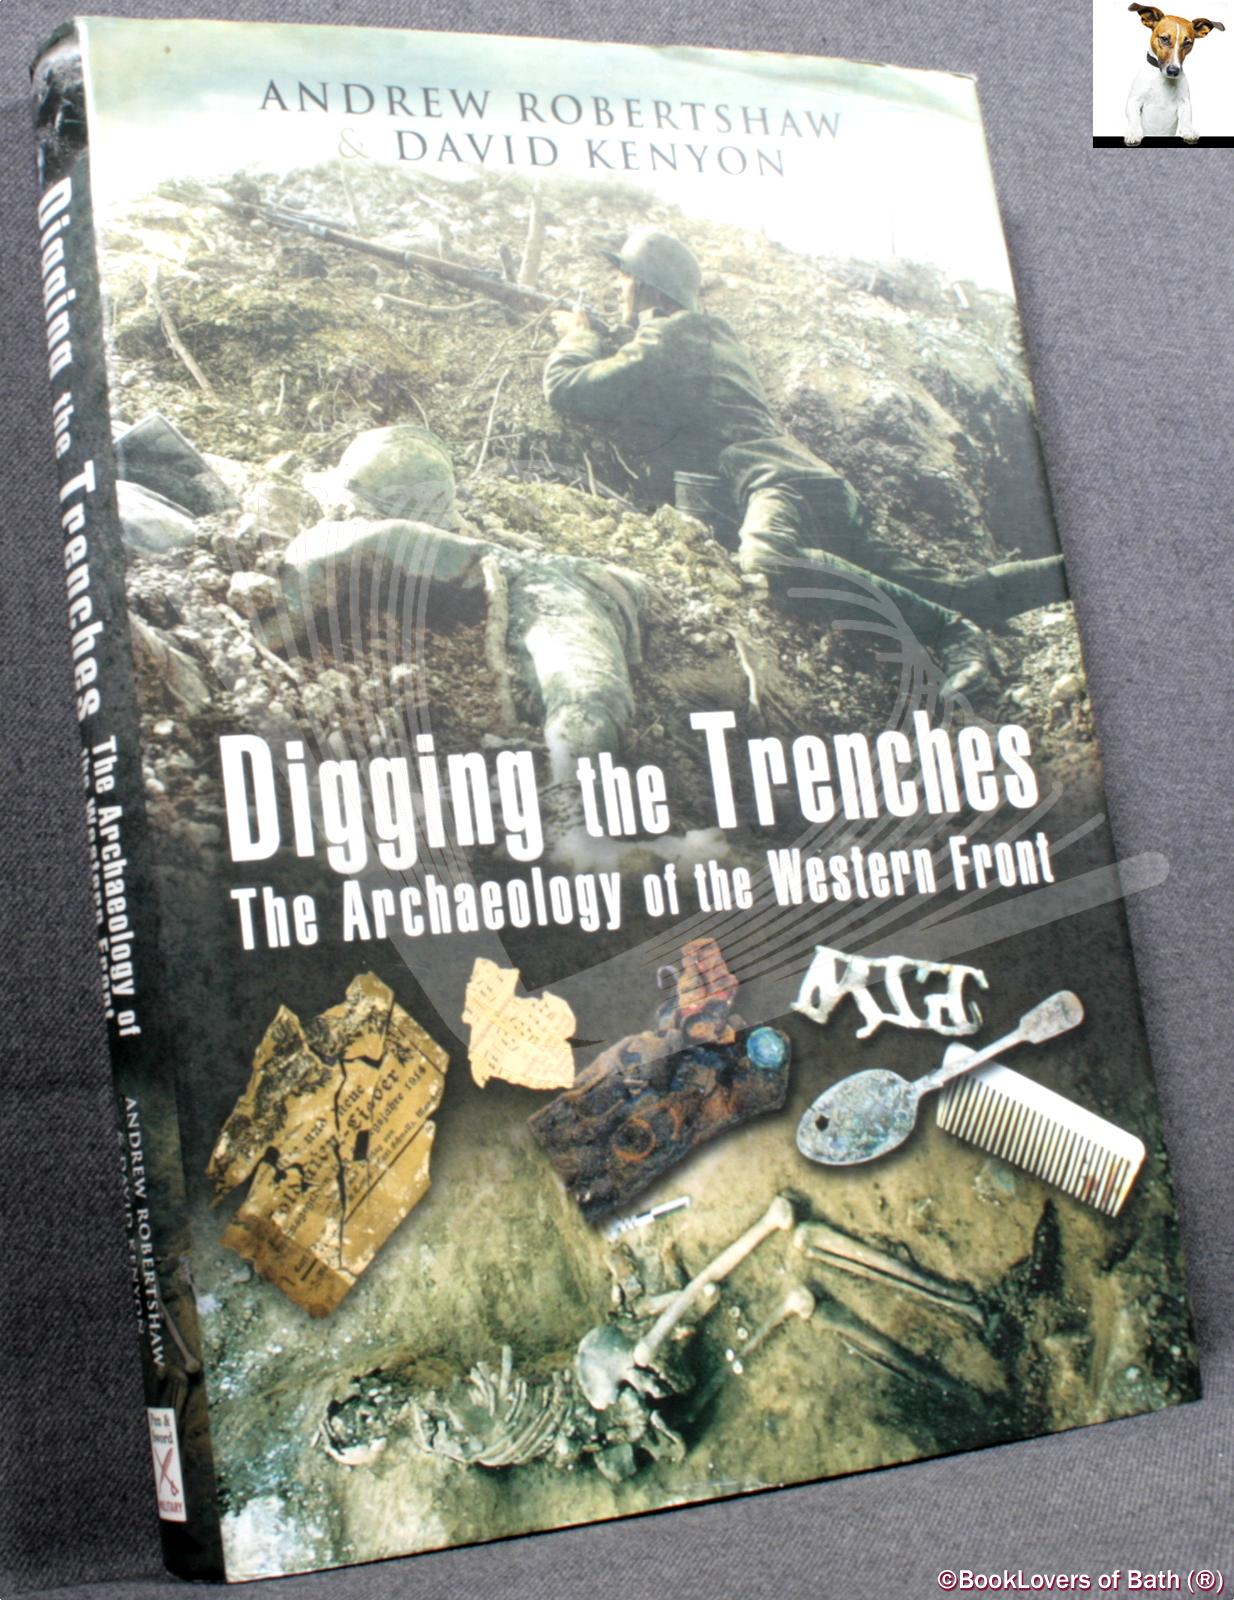 Digging the Trenches: The Archaeology of the Western Front - Andrew Robertshaw & David Kenyon